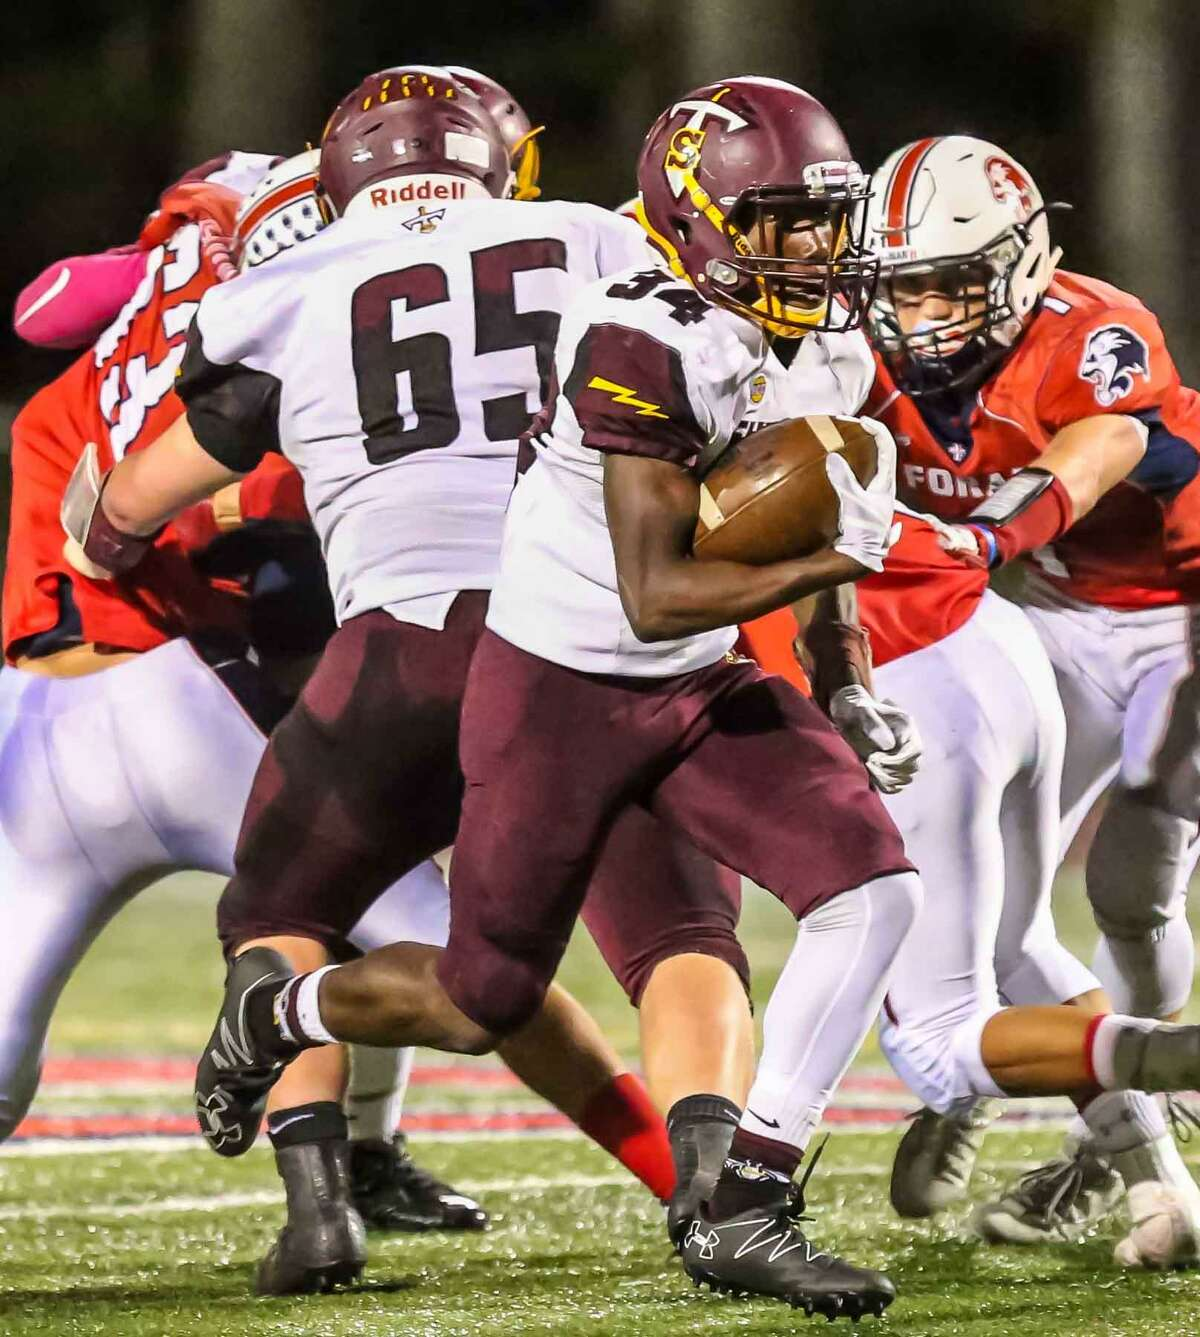 Sheehan's Terrance Bogan gets past the Foran defense for a a touchdown during Friday's game in Milford.